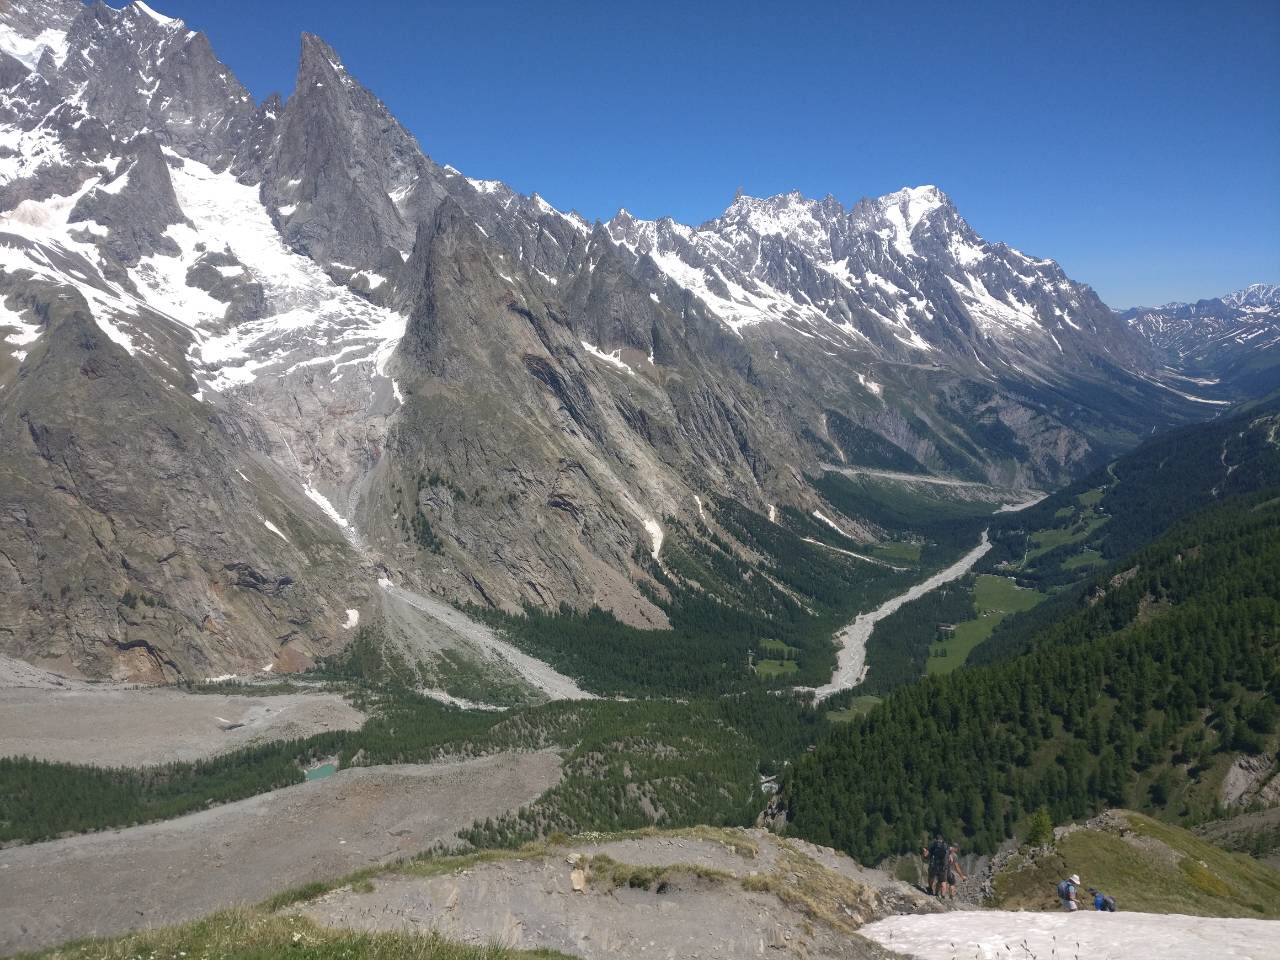 Val Veny:  Balcony trail opposite the Miage Glacier offers spectacular views of alpine lakes, ancient glaciers and lush green meadows.